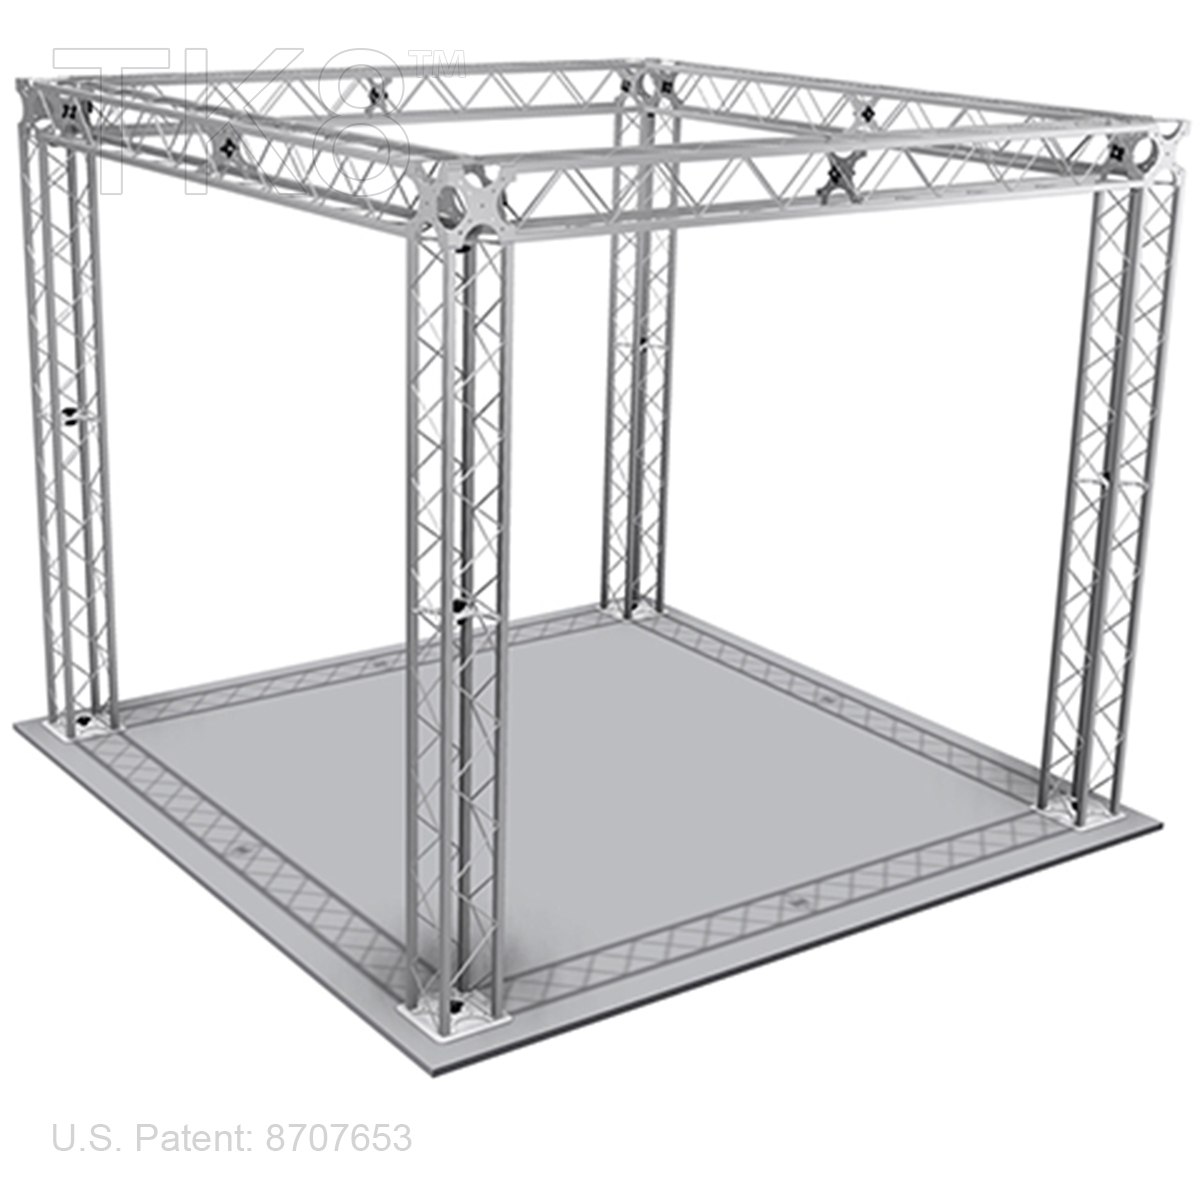 jacob 10ft x 10ft tk8 aluminum box truss booth br frame only